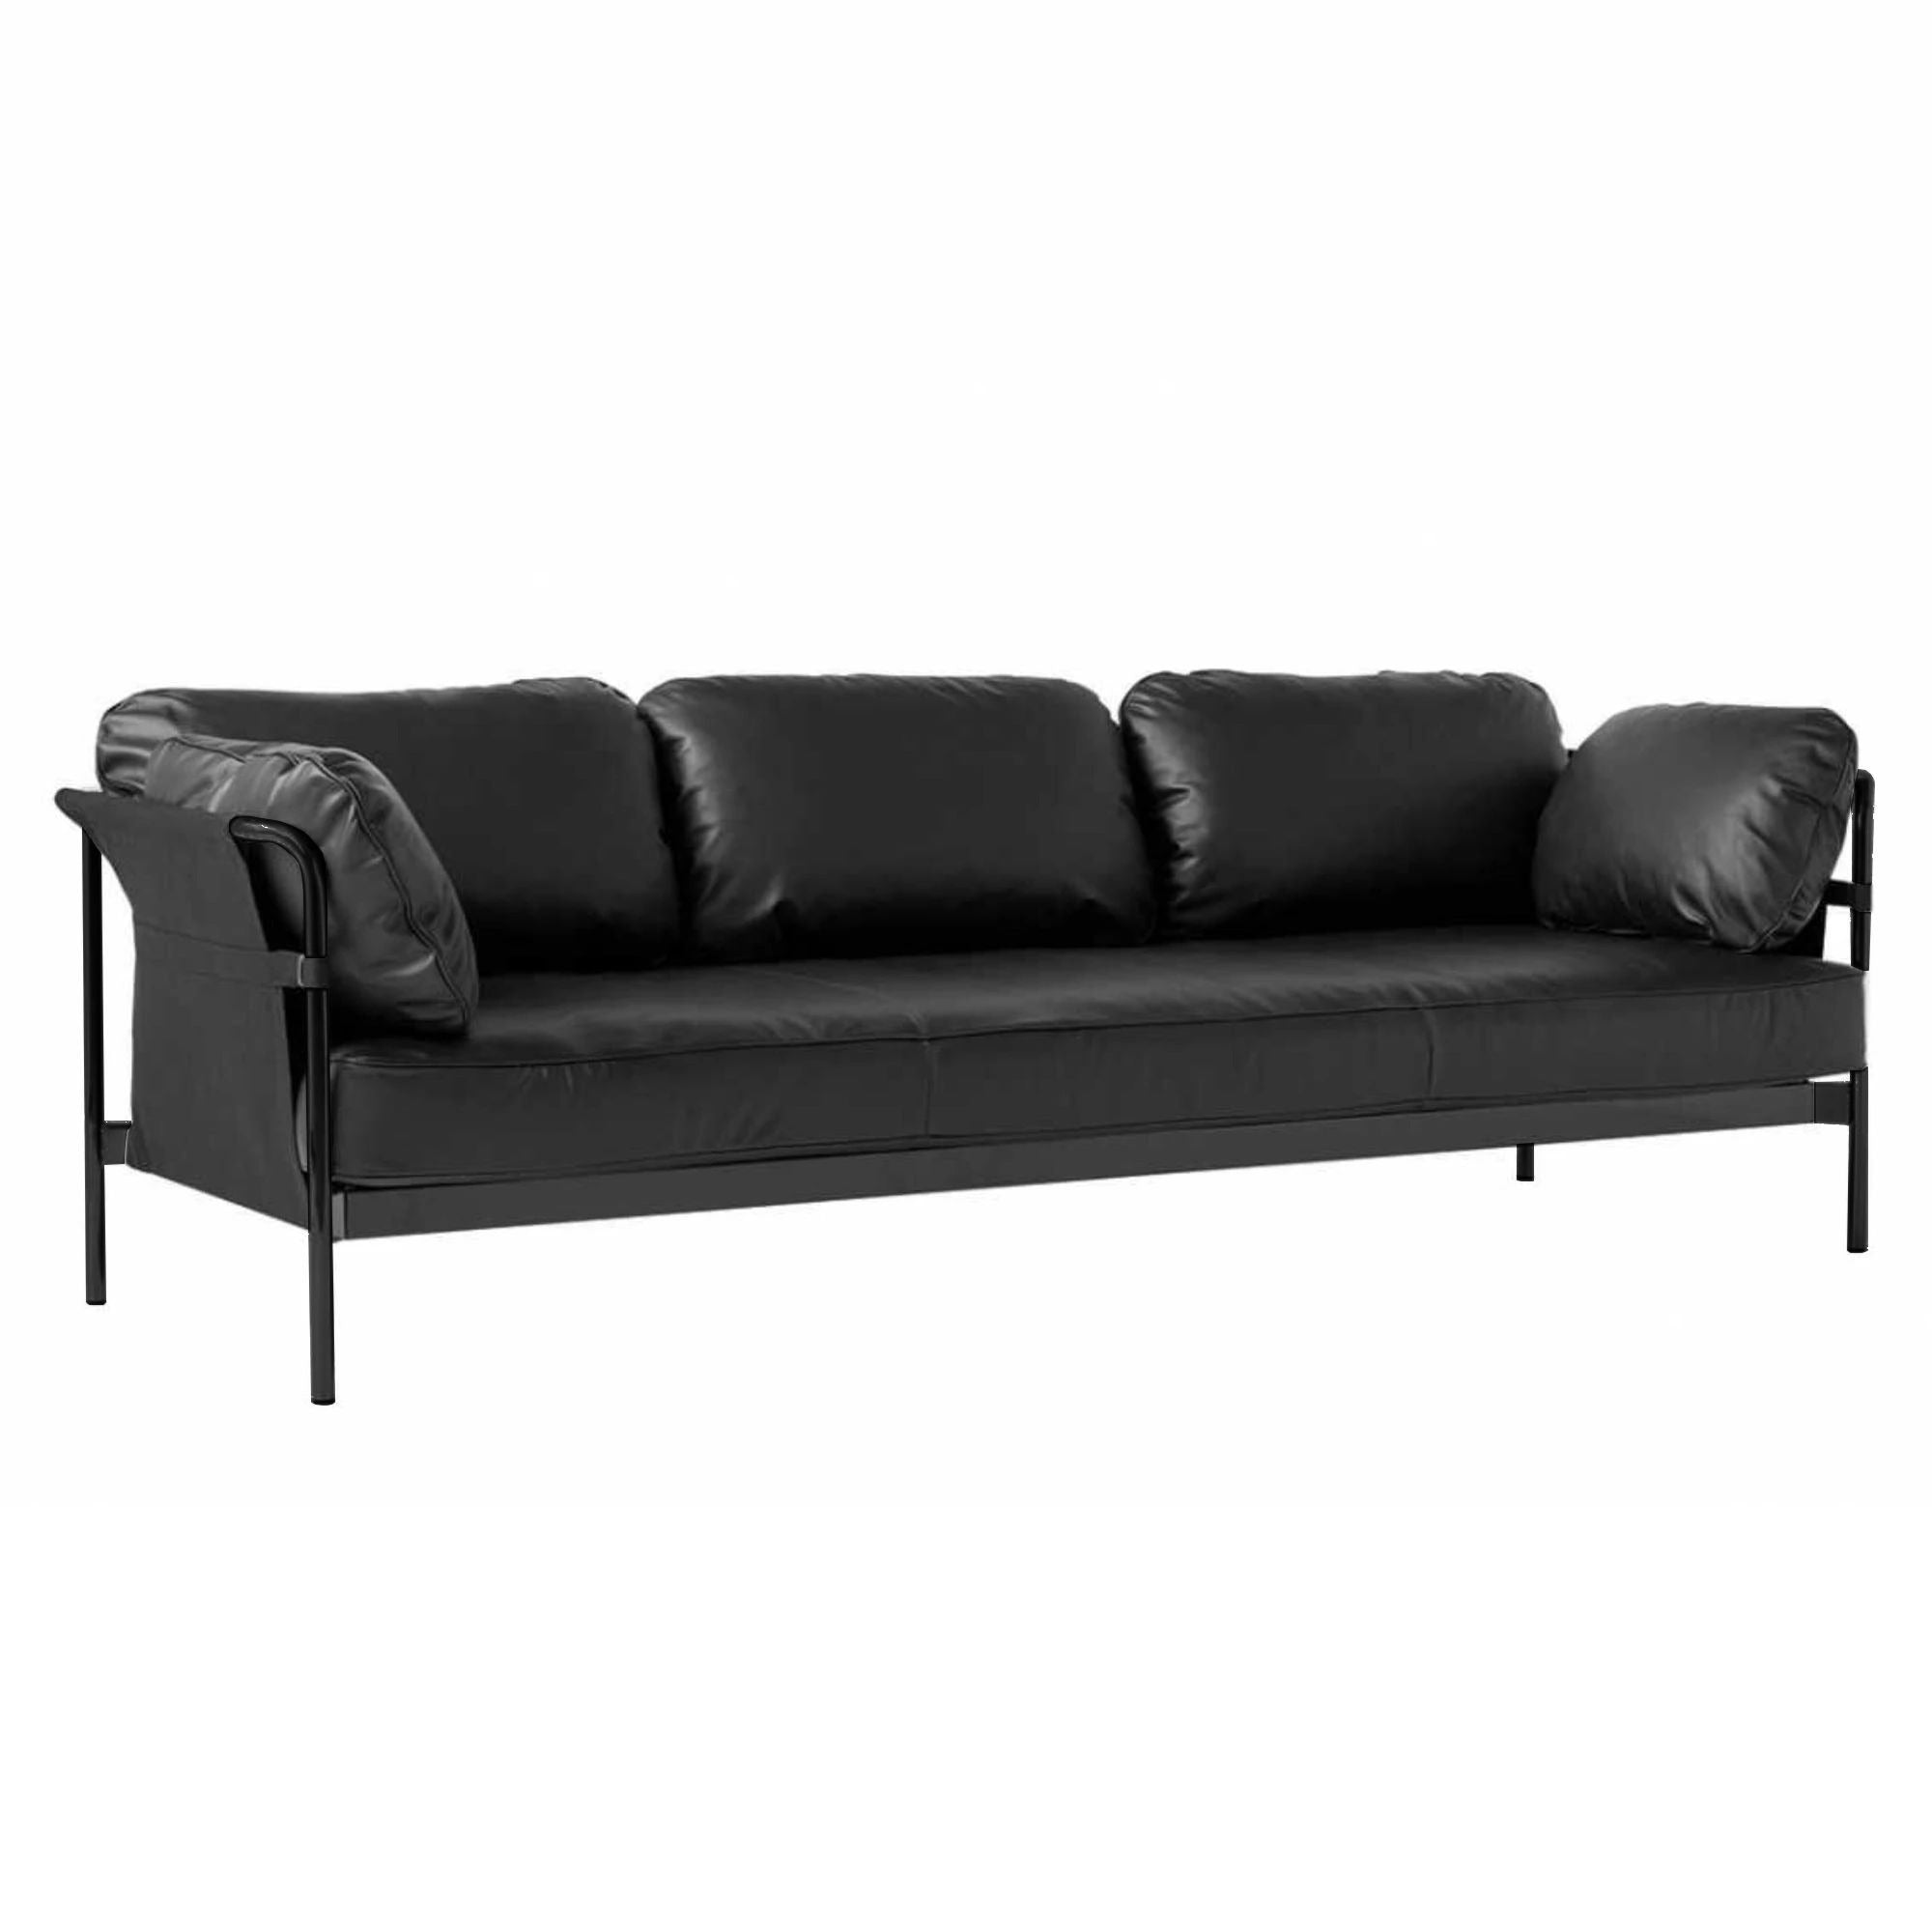 HAY Can 3-Seater Sofa 2.0 , Black-Black-Silk0842